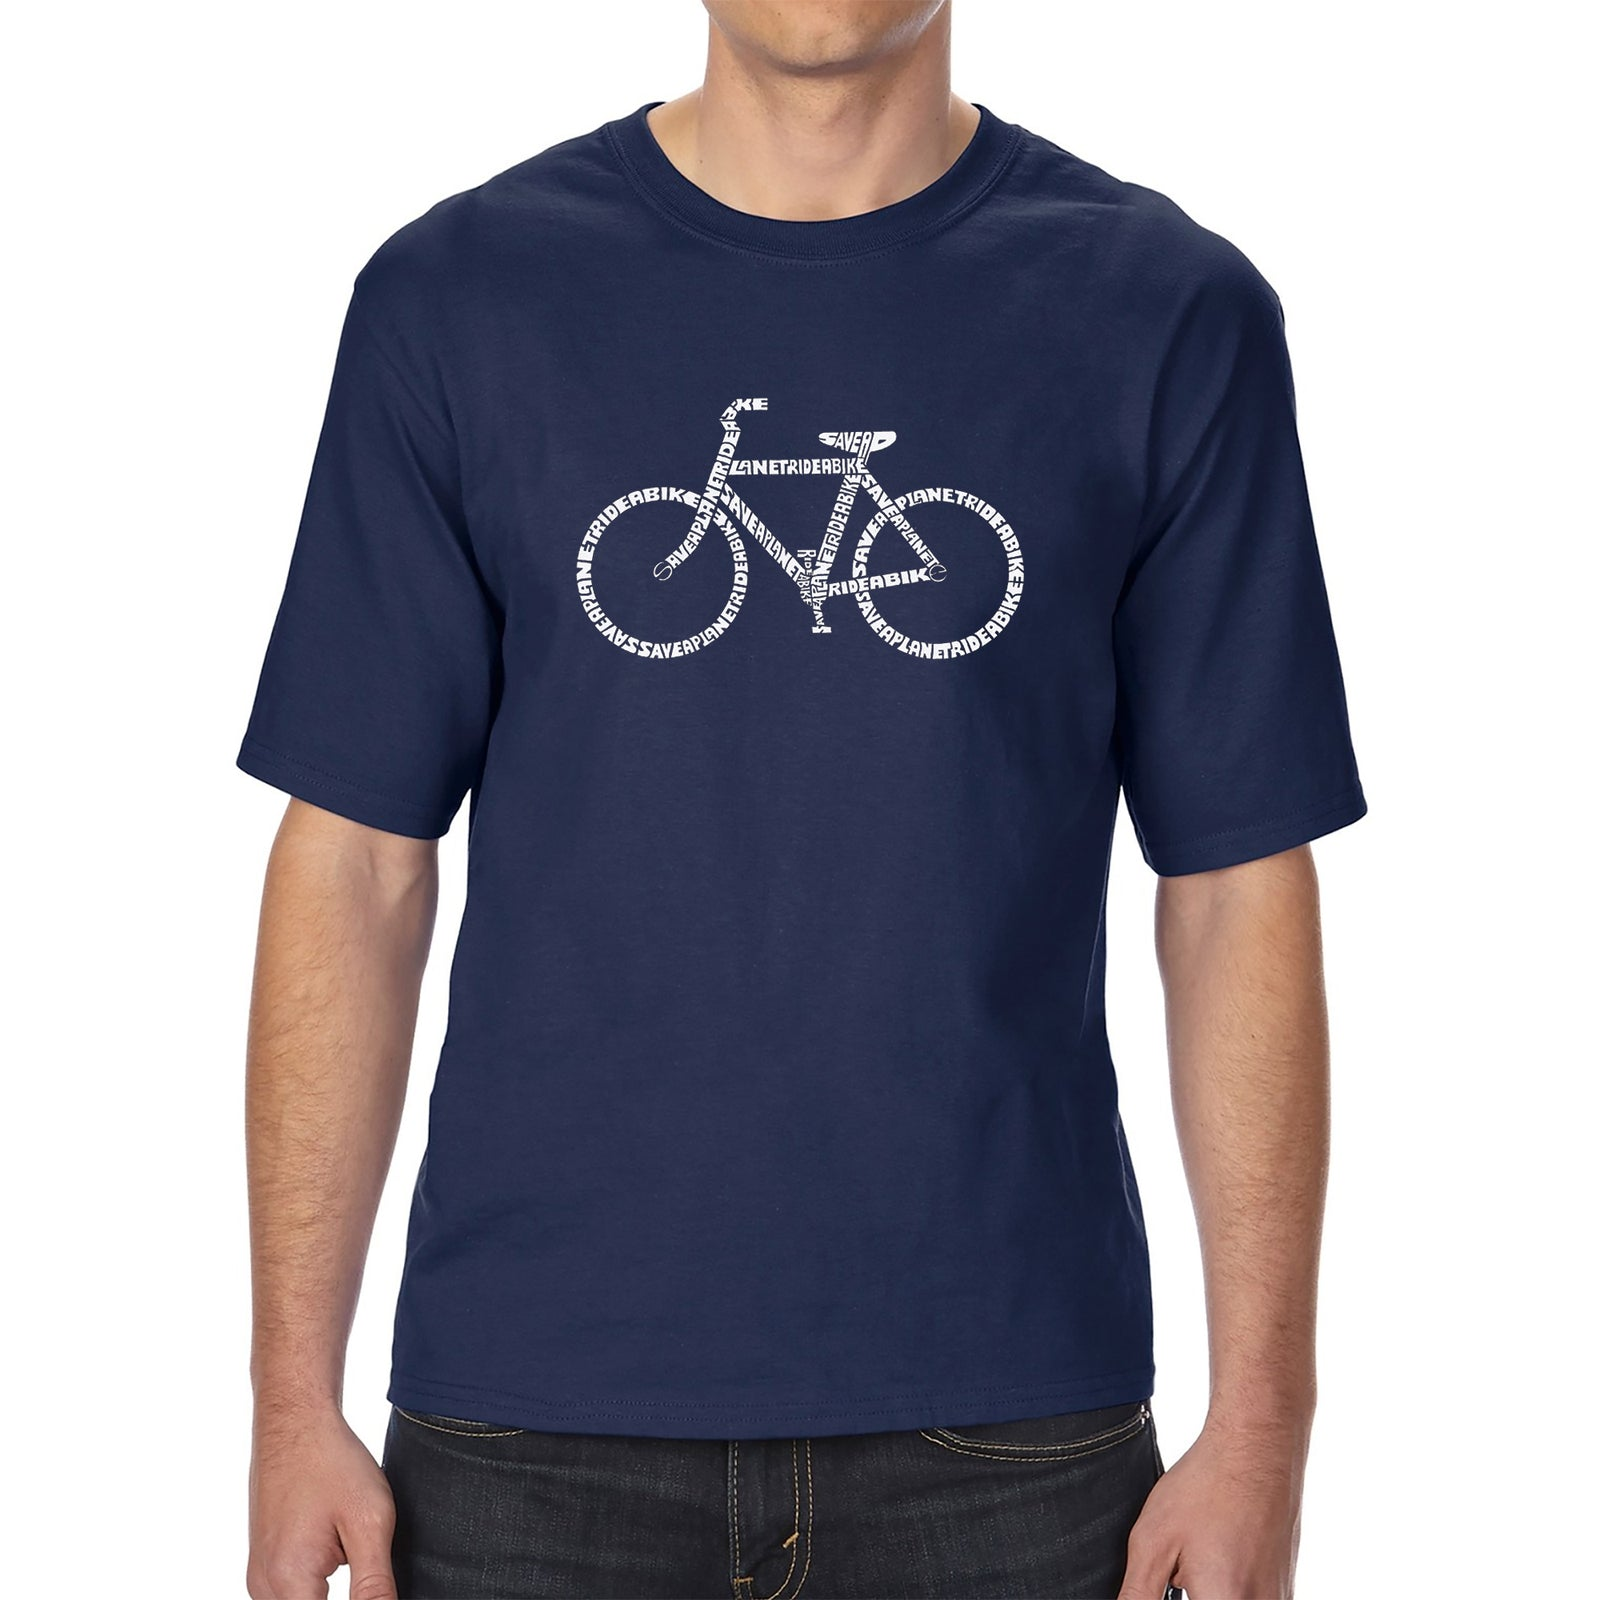 Men's Tall and Long Word Art T-shirt - SAVE A PLANET, RIDE A BIKE